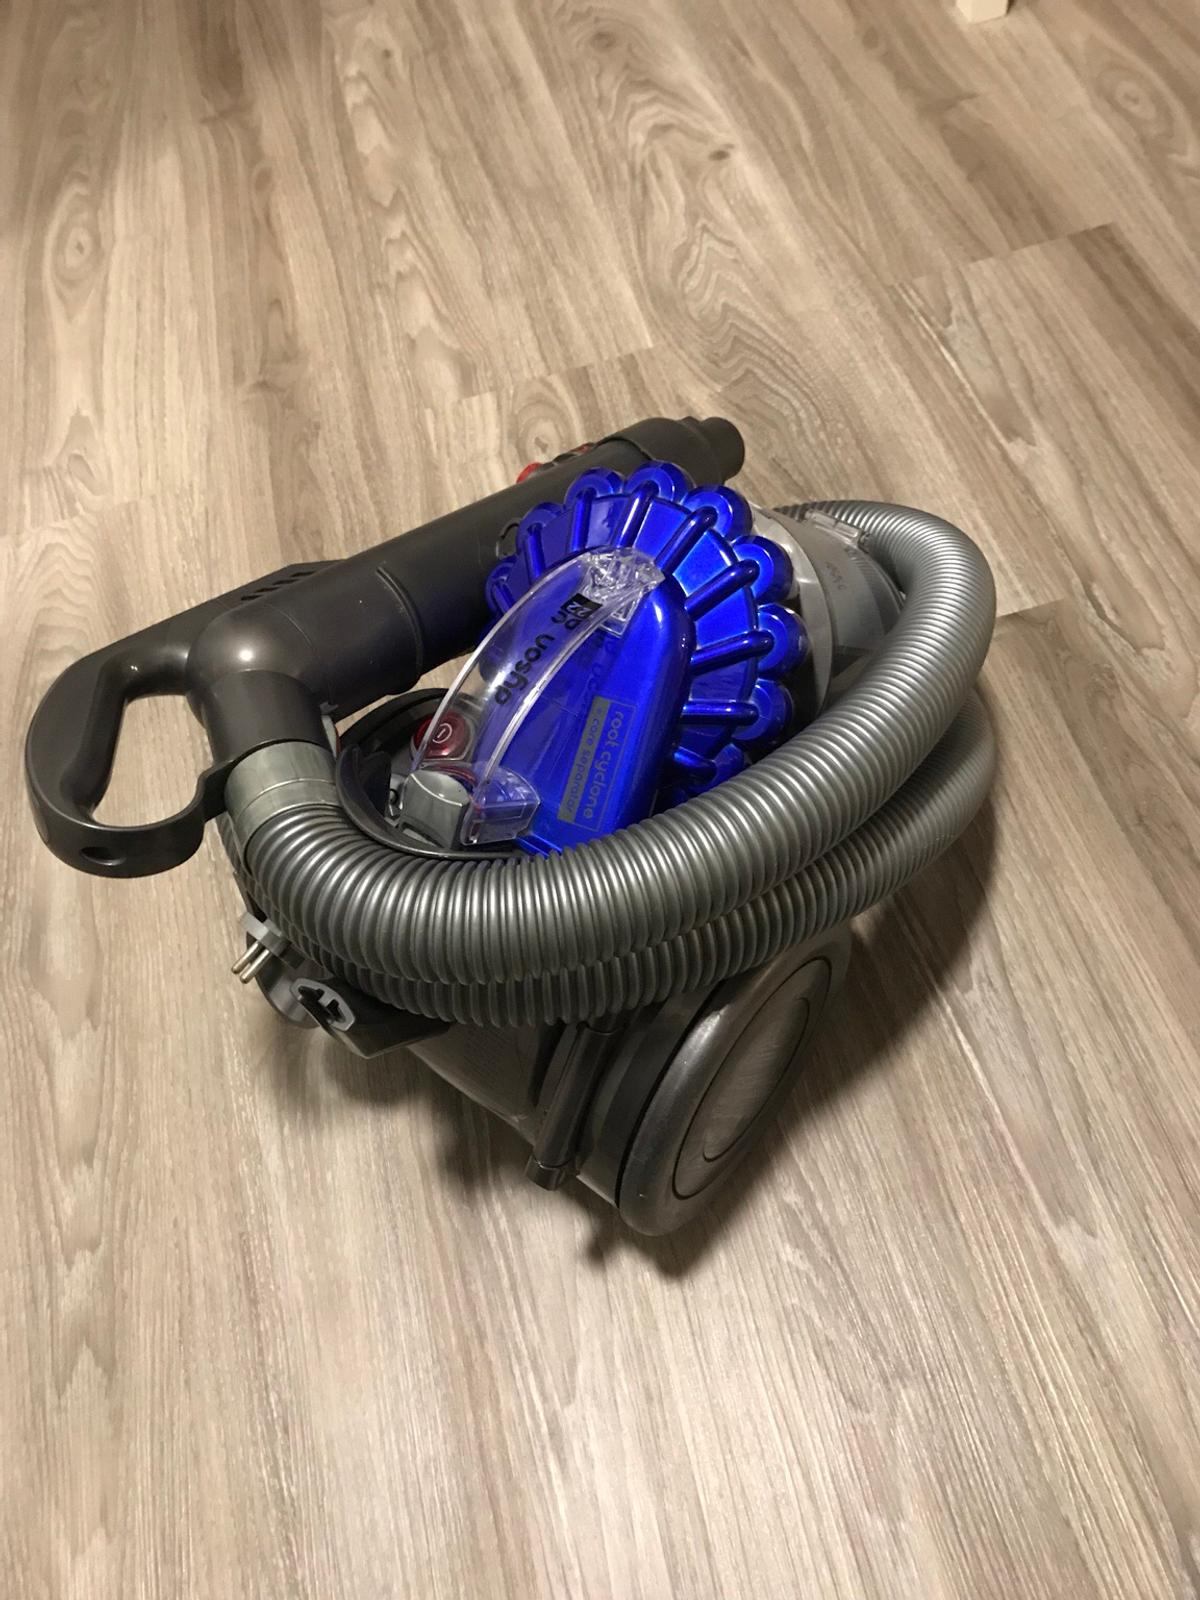 Green Label Grooming Tool with Adaptor for Dyson. Dog/Pet/Animal Attachment  Brush for Dyson Vacuum Cleaners (compares to 921001-01, 912270-01):  Amazon.co.uk: Kitchen & Home